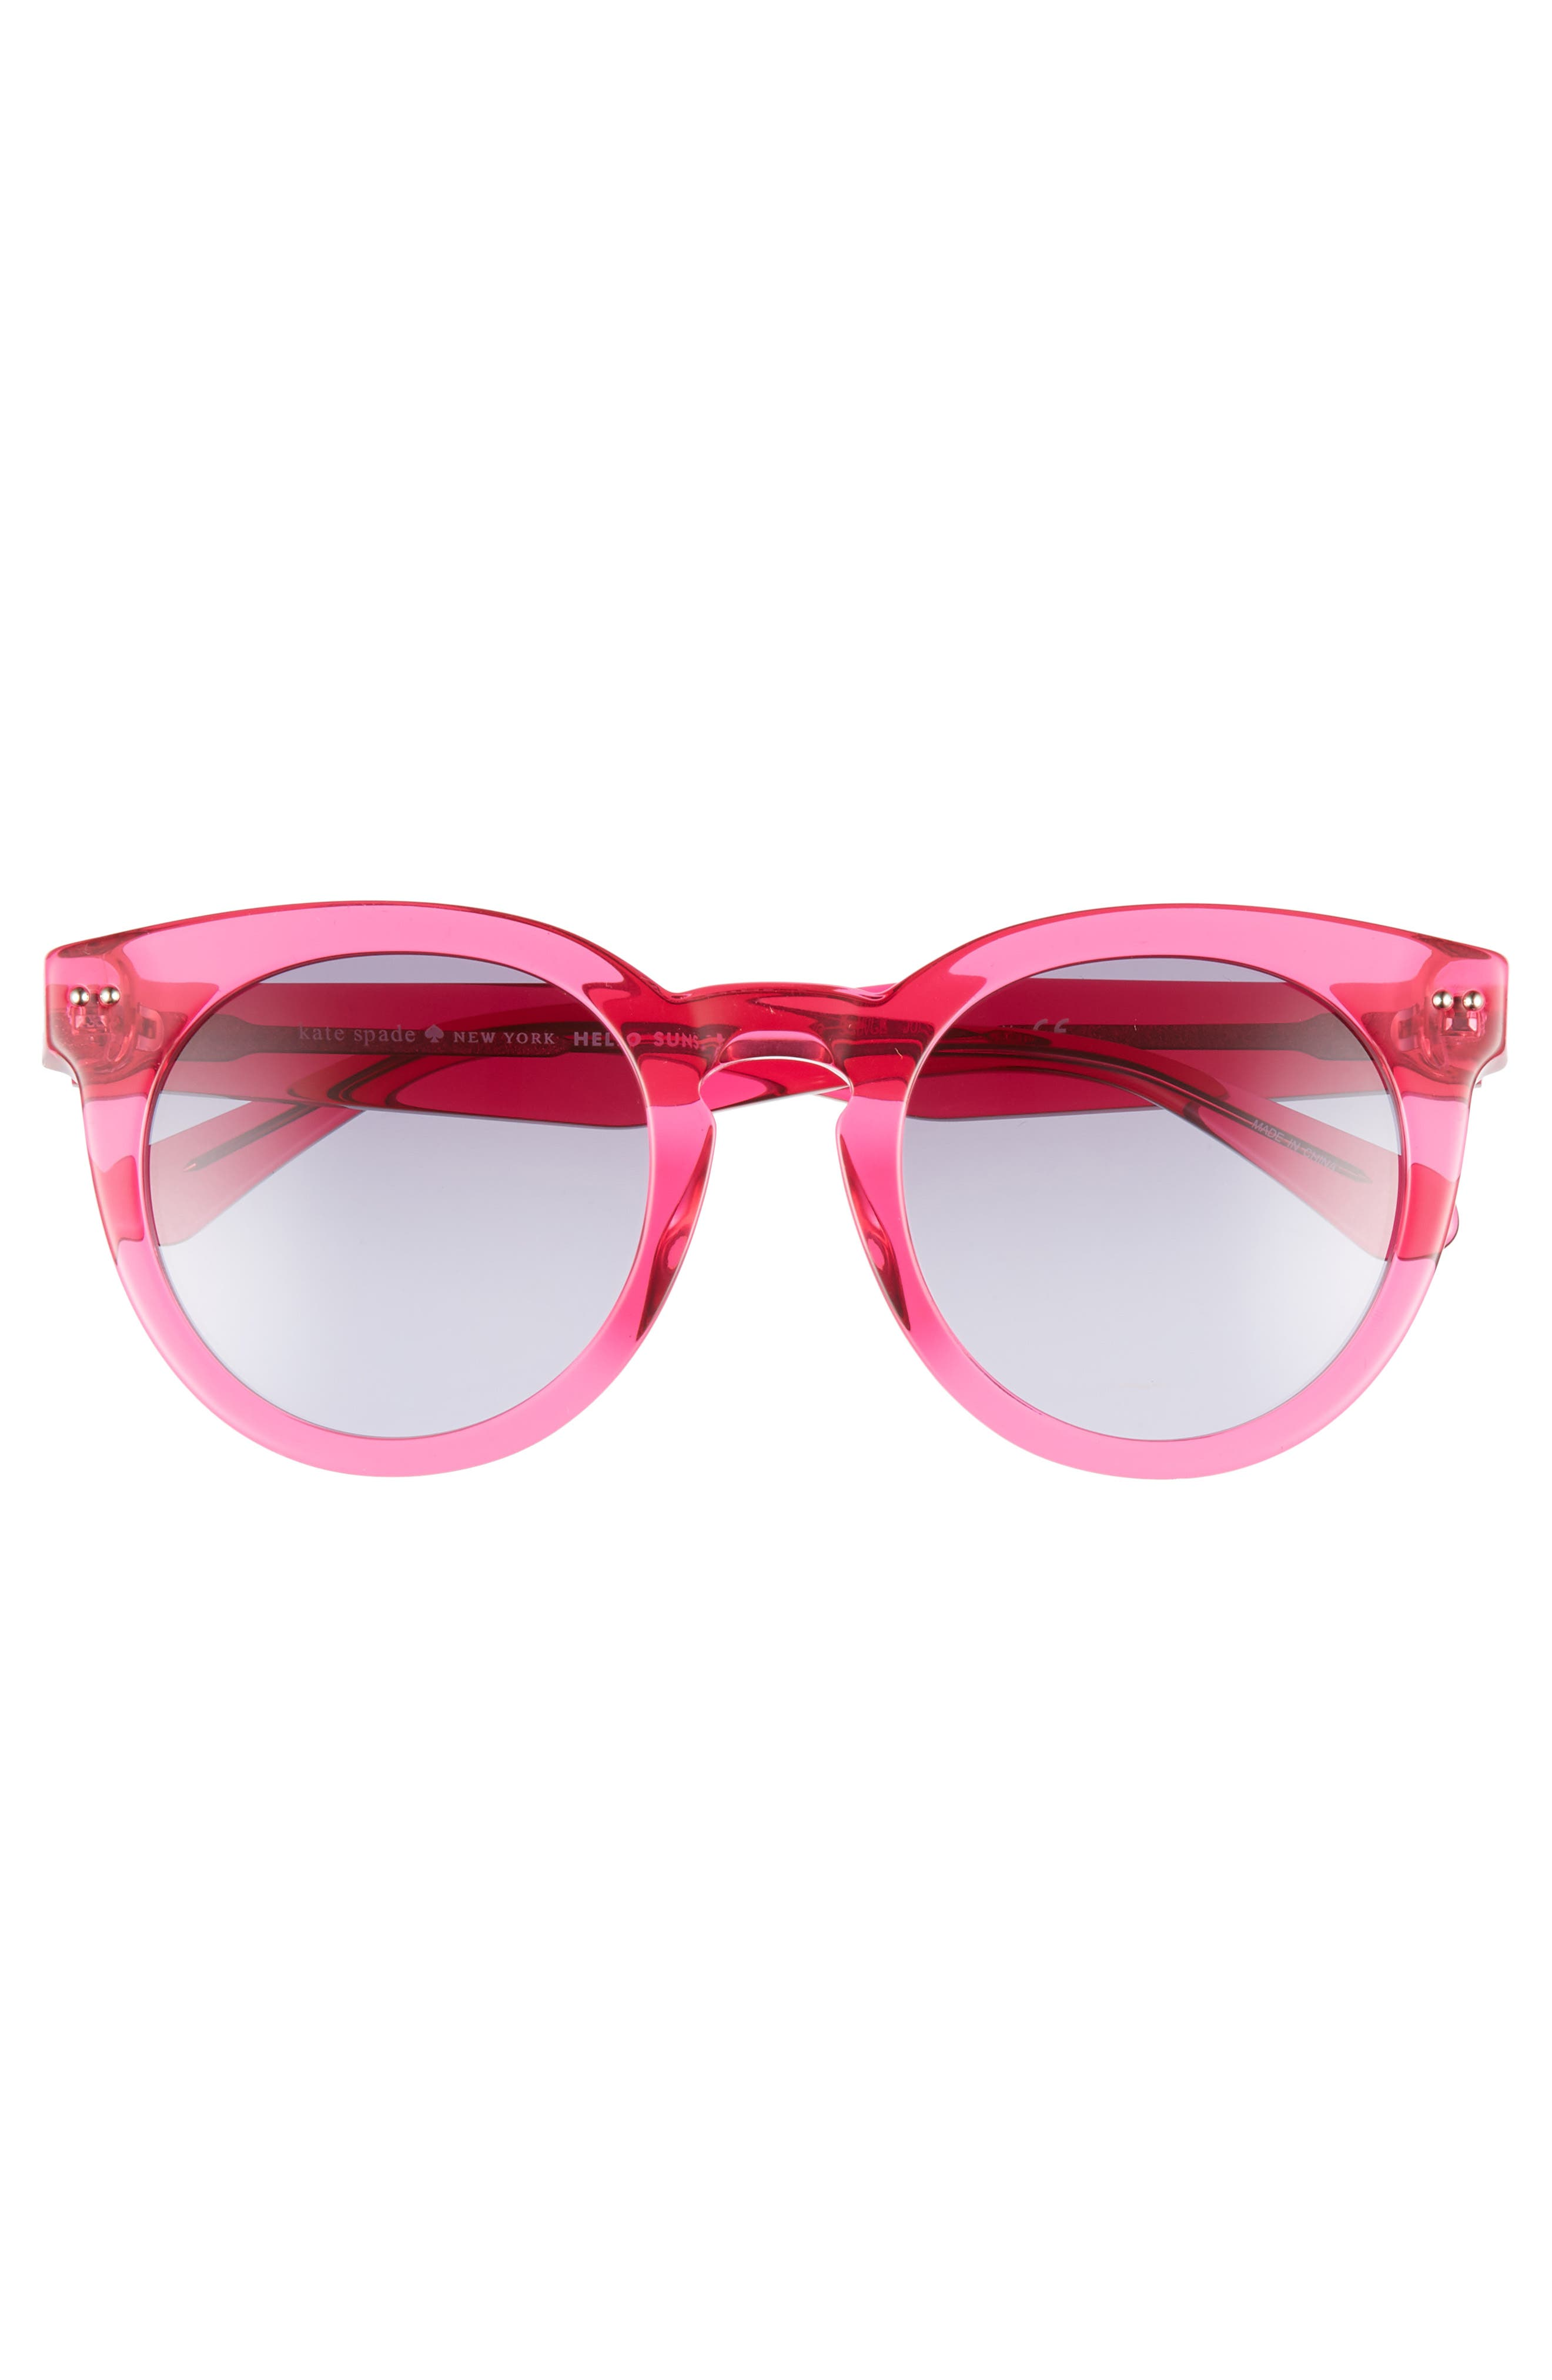 alexuss 50mm round sunglasses,                             Alternate thumbnail 3, color,                             CRYSTAL PINK